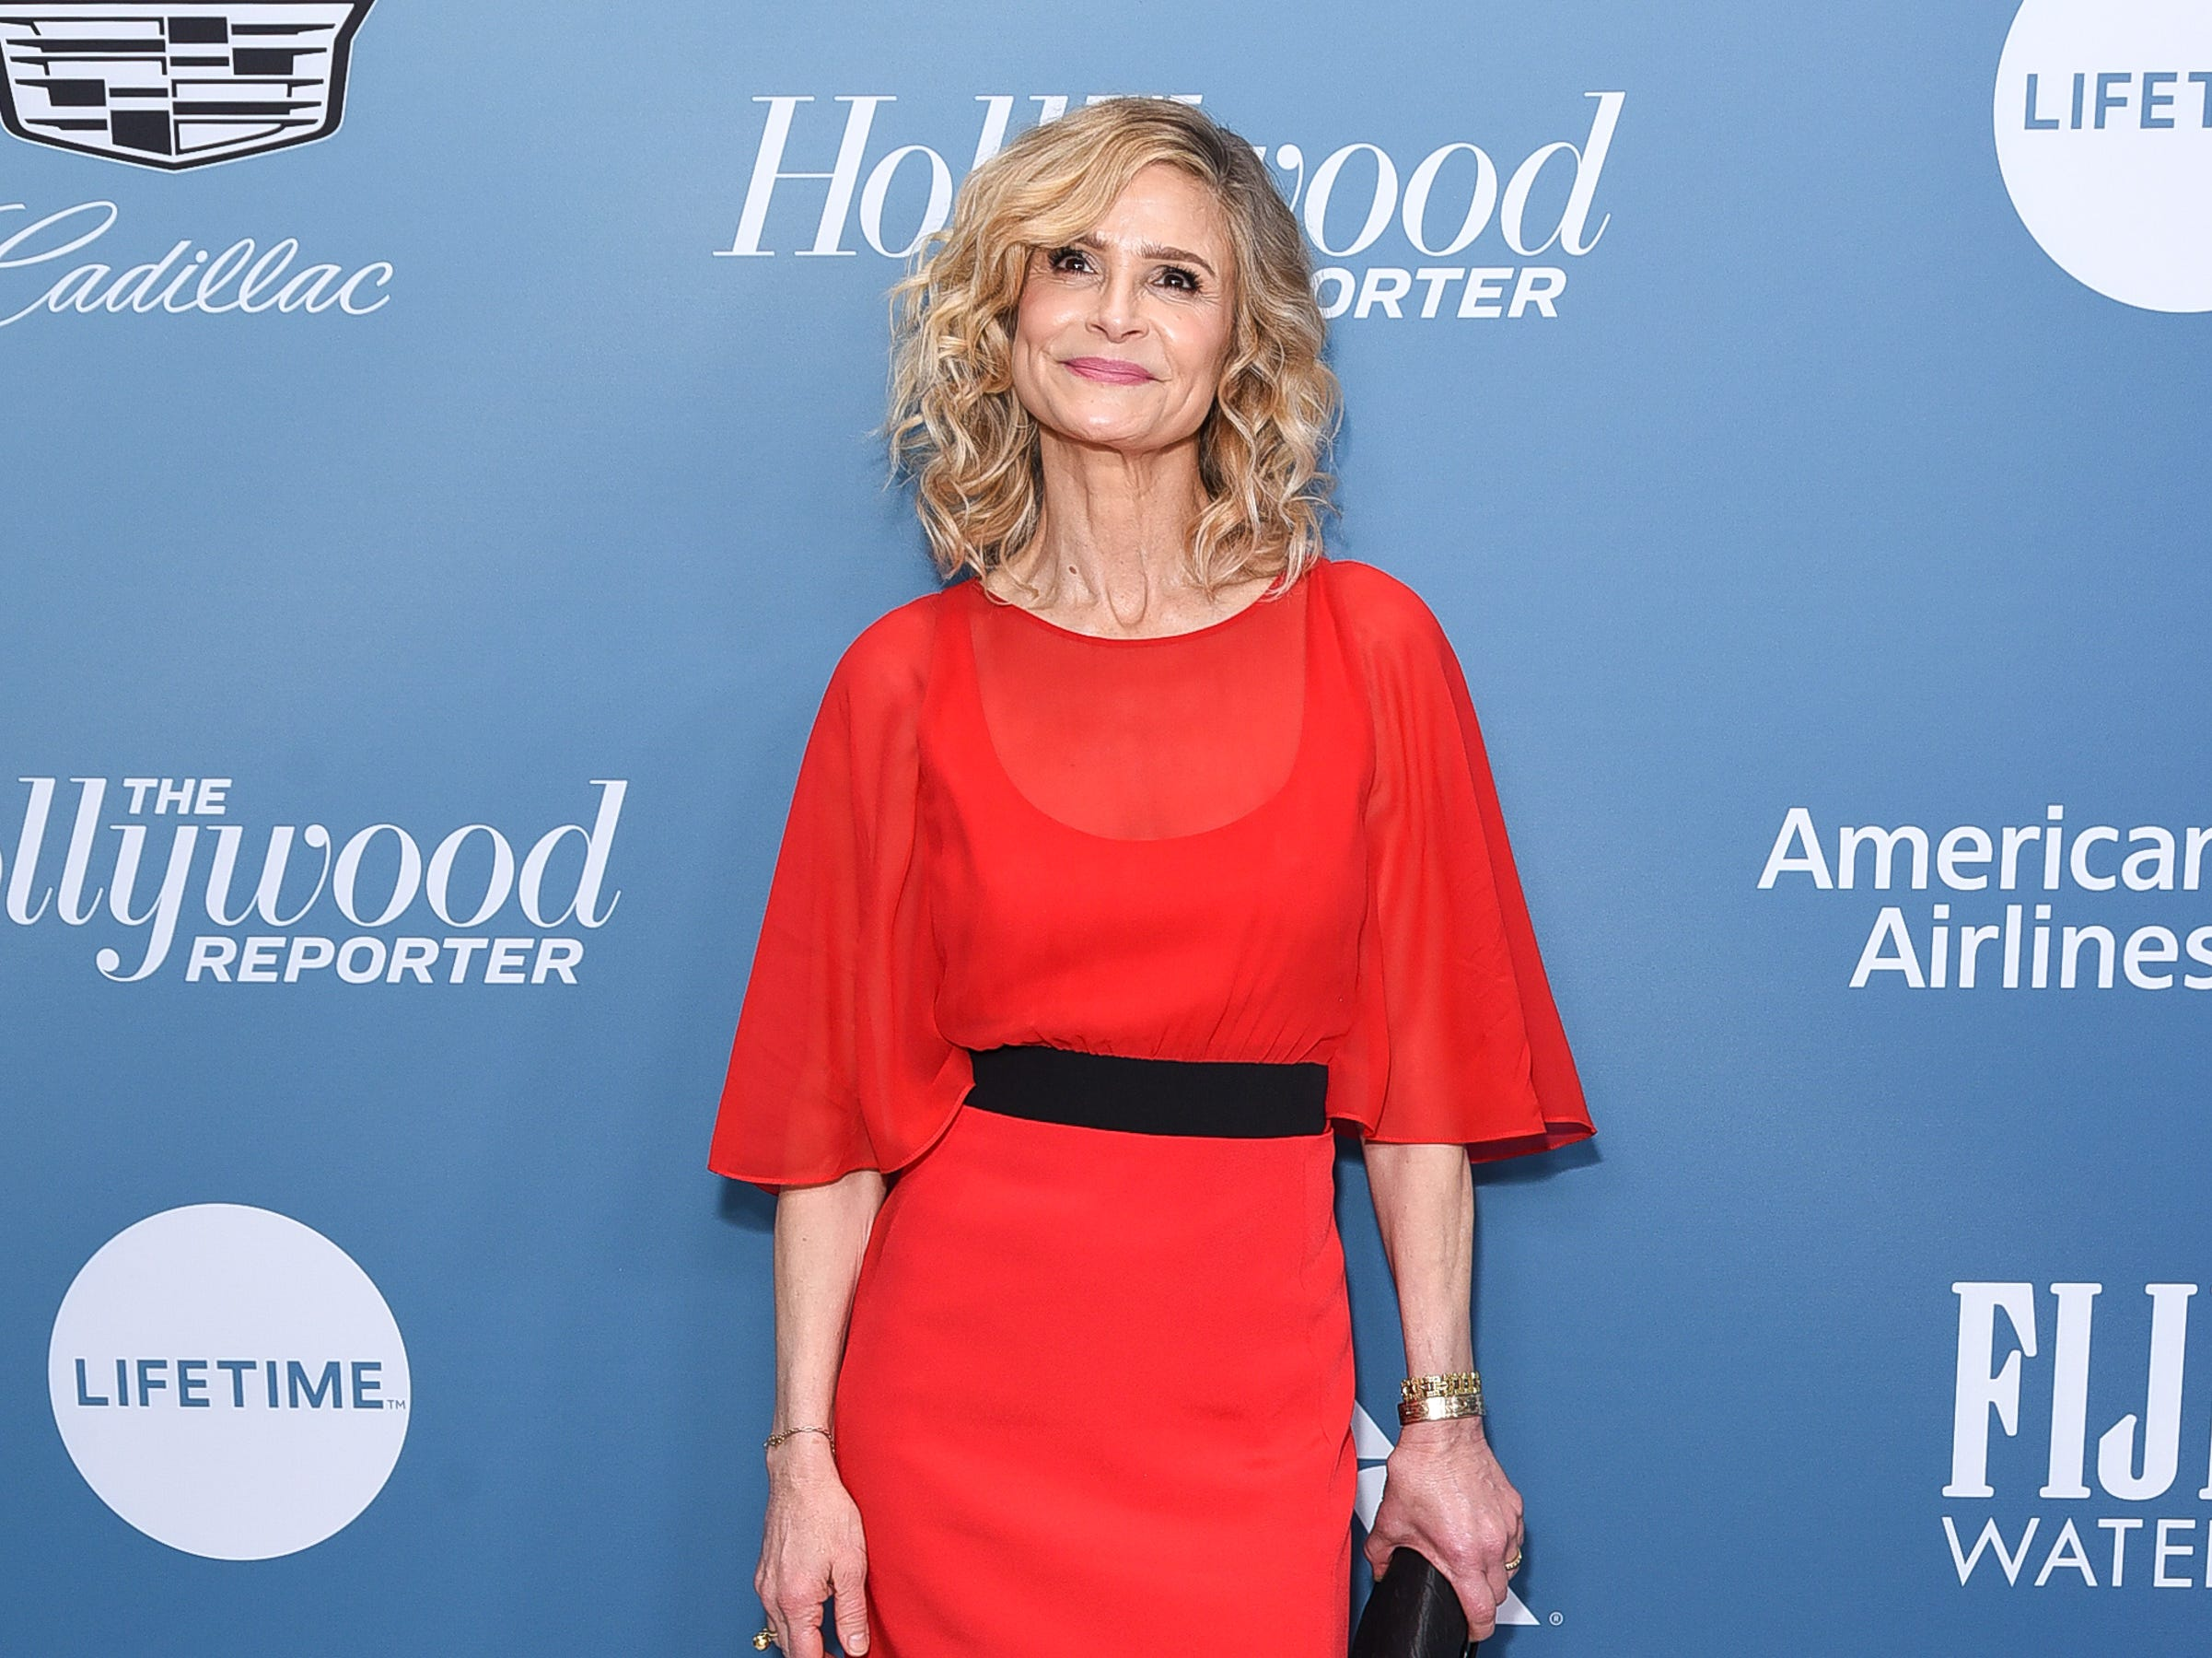 LOS ANGELES, CALIFORNIA - DECEMBER 05: Kyra Sedgwick attends The Hollywood Reporter's Power 100 Women In Entertainment at Milk Studios on December 05, 2018 in Los Angeles, California. (Photo by Presley Ann/Getty Images) ORG XMIT: 775264723 ORIG FILE ID: 1077816166